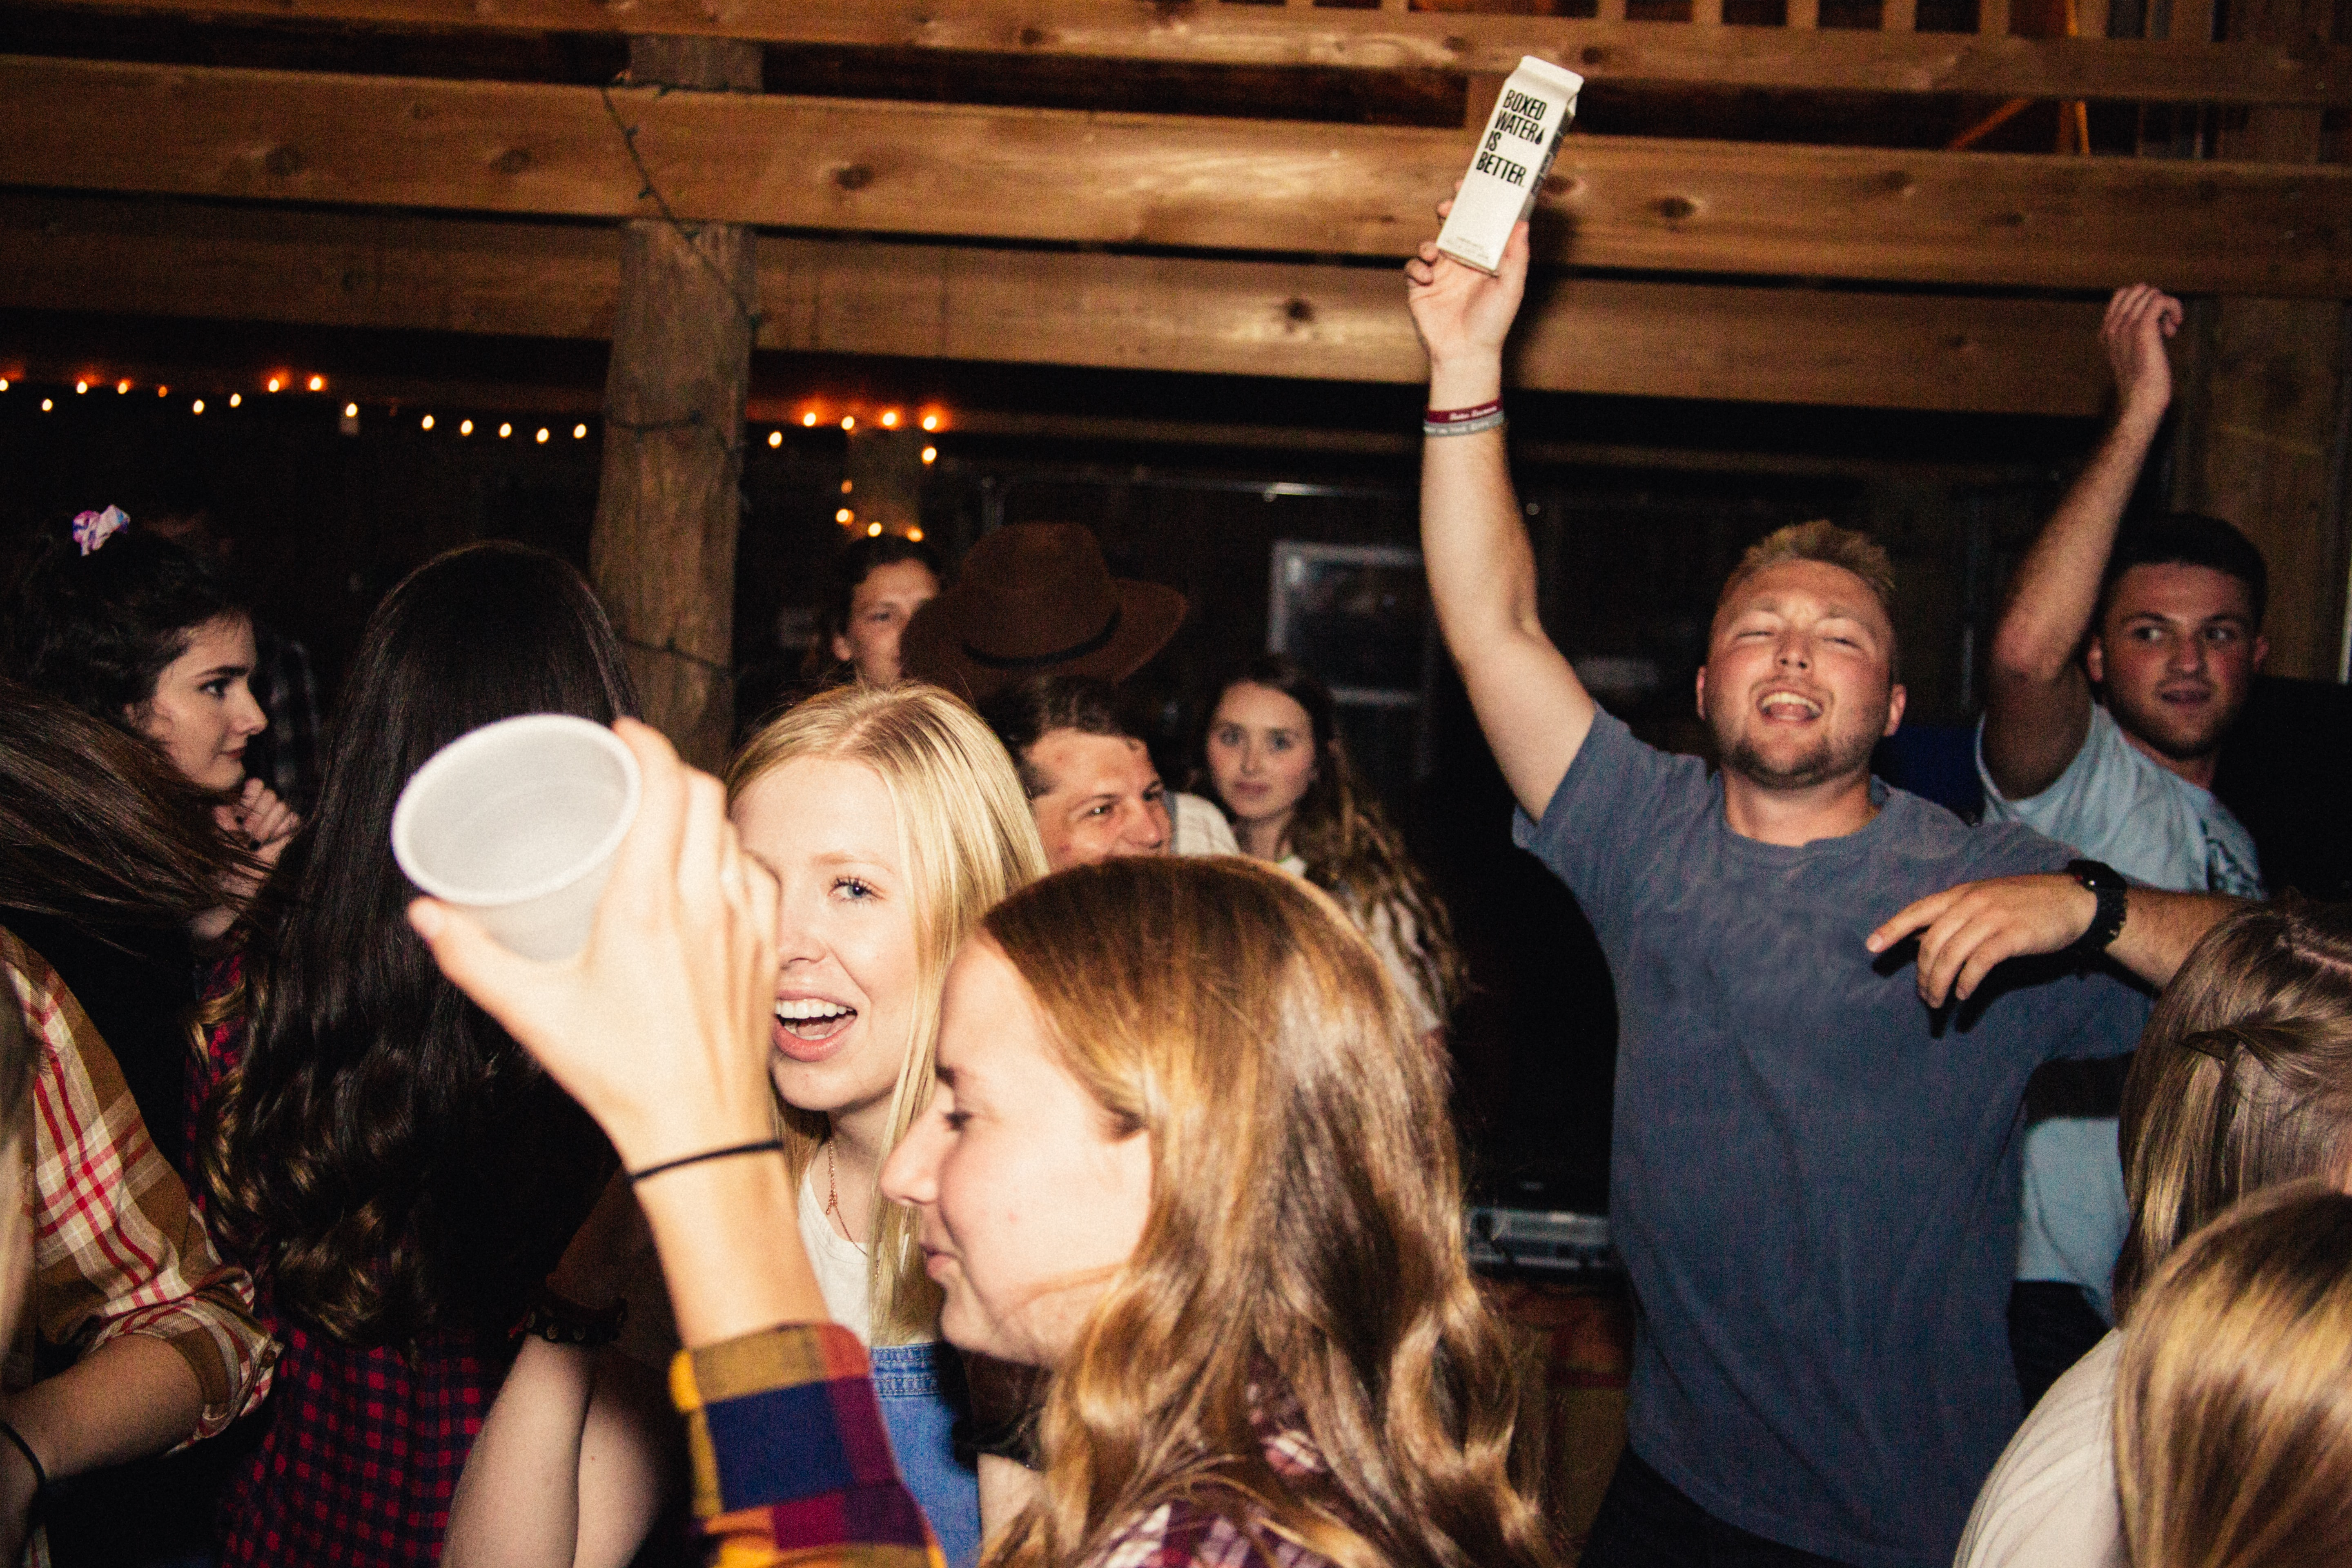 4 Simple Games To Get The Party Started